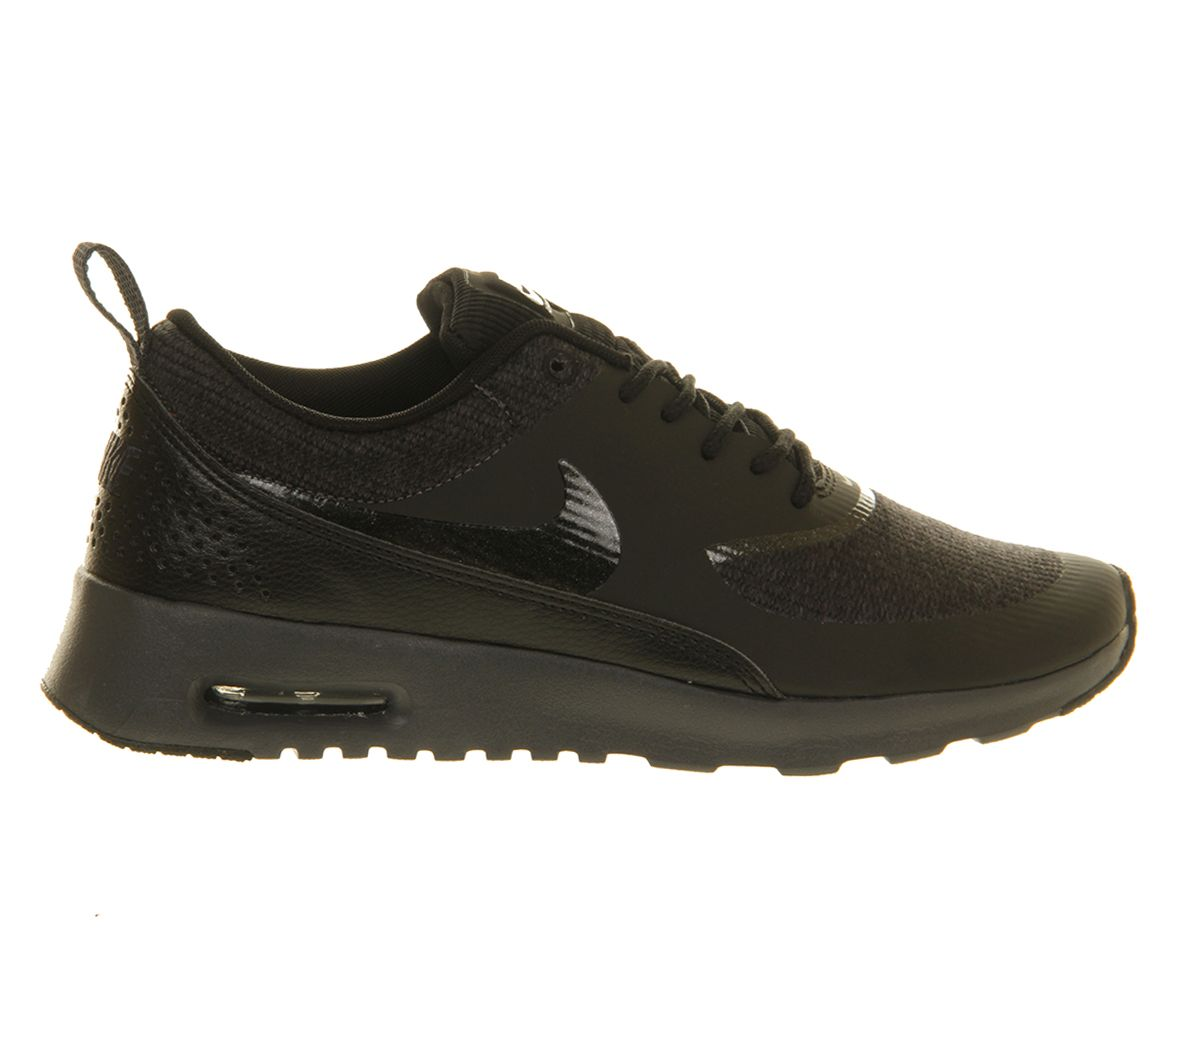 beauty best price coupon codes Nike Air Max Thea Black Antharacite - Hers trainers   Omg ...